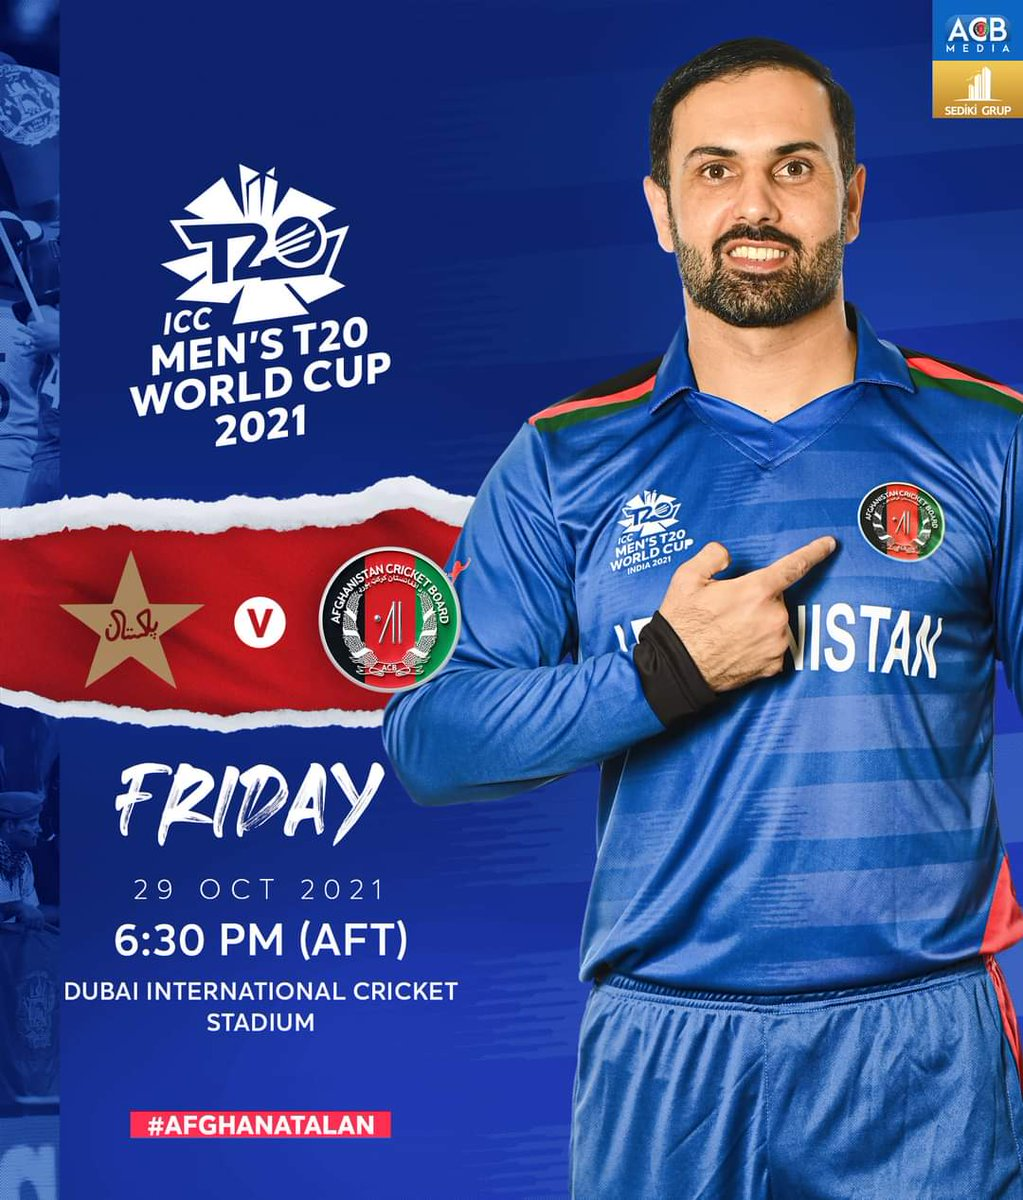 AfghanAtalan will be playing Pakistan in 2nd match of their ICC Men's T20 World Cup 2021 campaign this Friday. The contest will start at 6:30 AFT and will be played in Dubai Sports City. https://t.co/jBV3iXAFy1